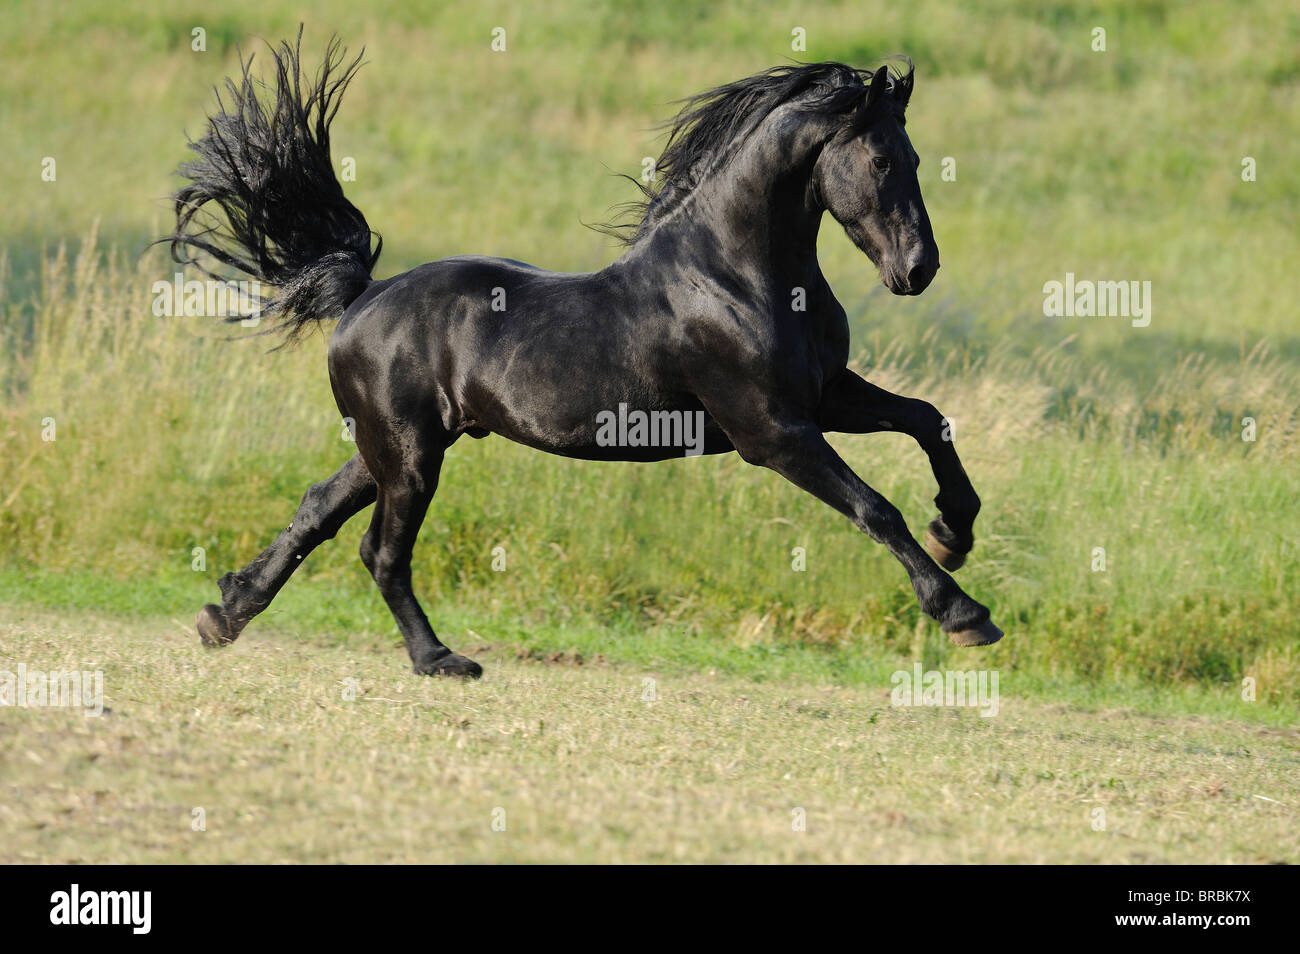 Friesian Horse (Equus ferus caballus). Stallion galopping on a meadow. - Stock Image